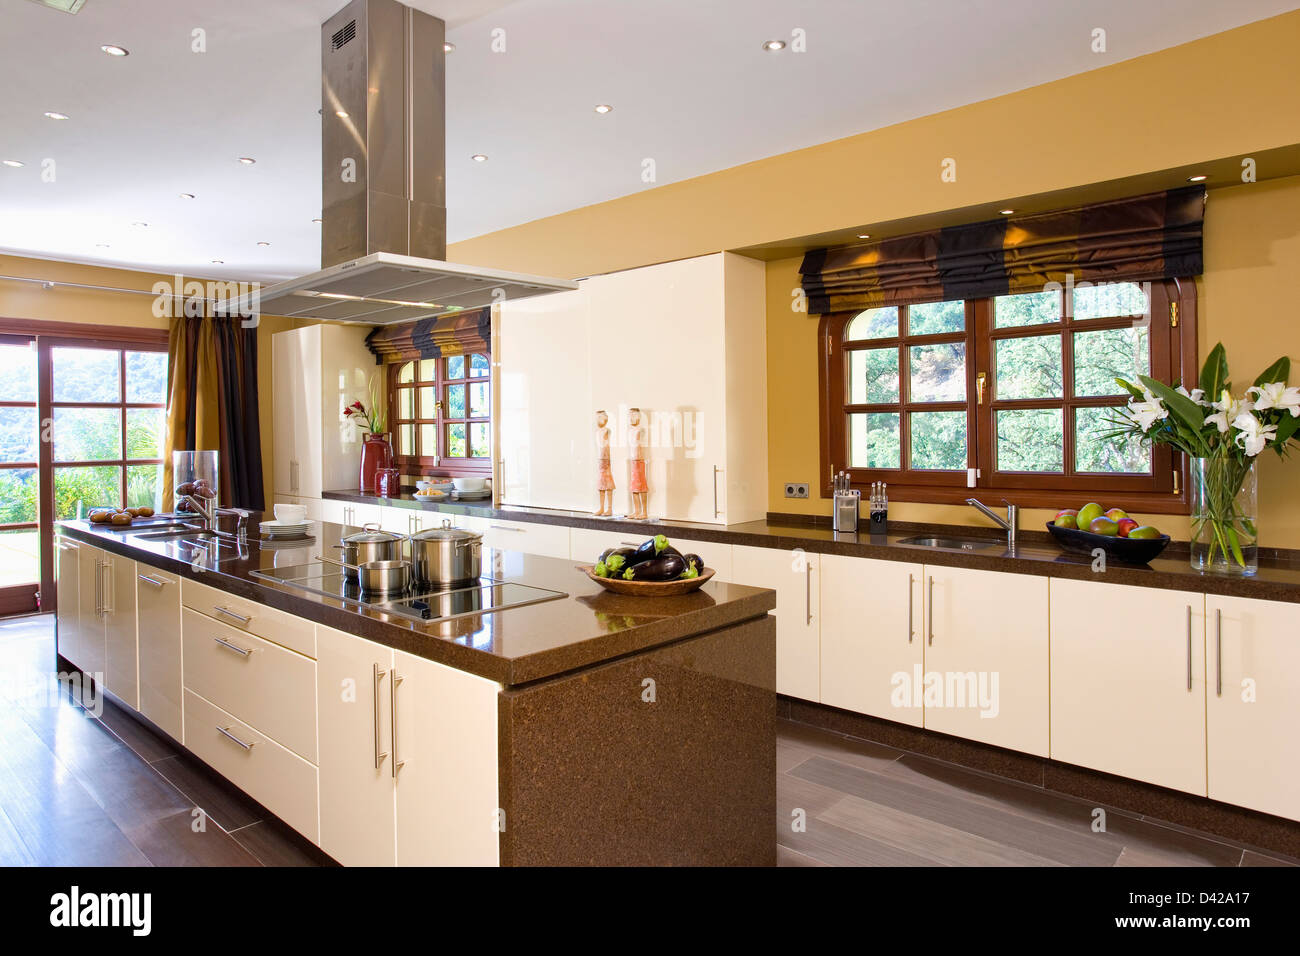 Extractor fan over island unit in modern kitchen in spanish villa stock photo royalty free - Kitchen island extractor fans ...